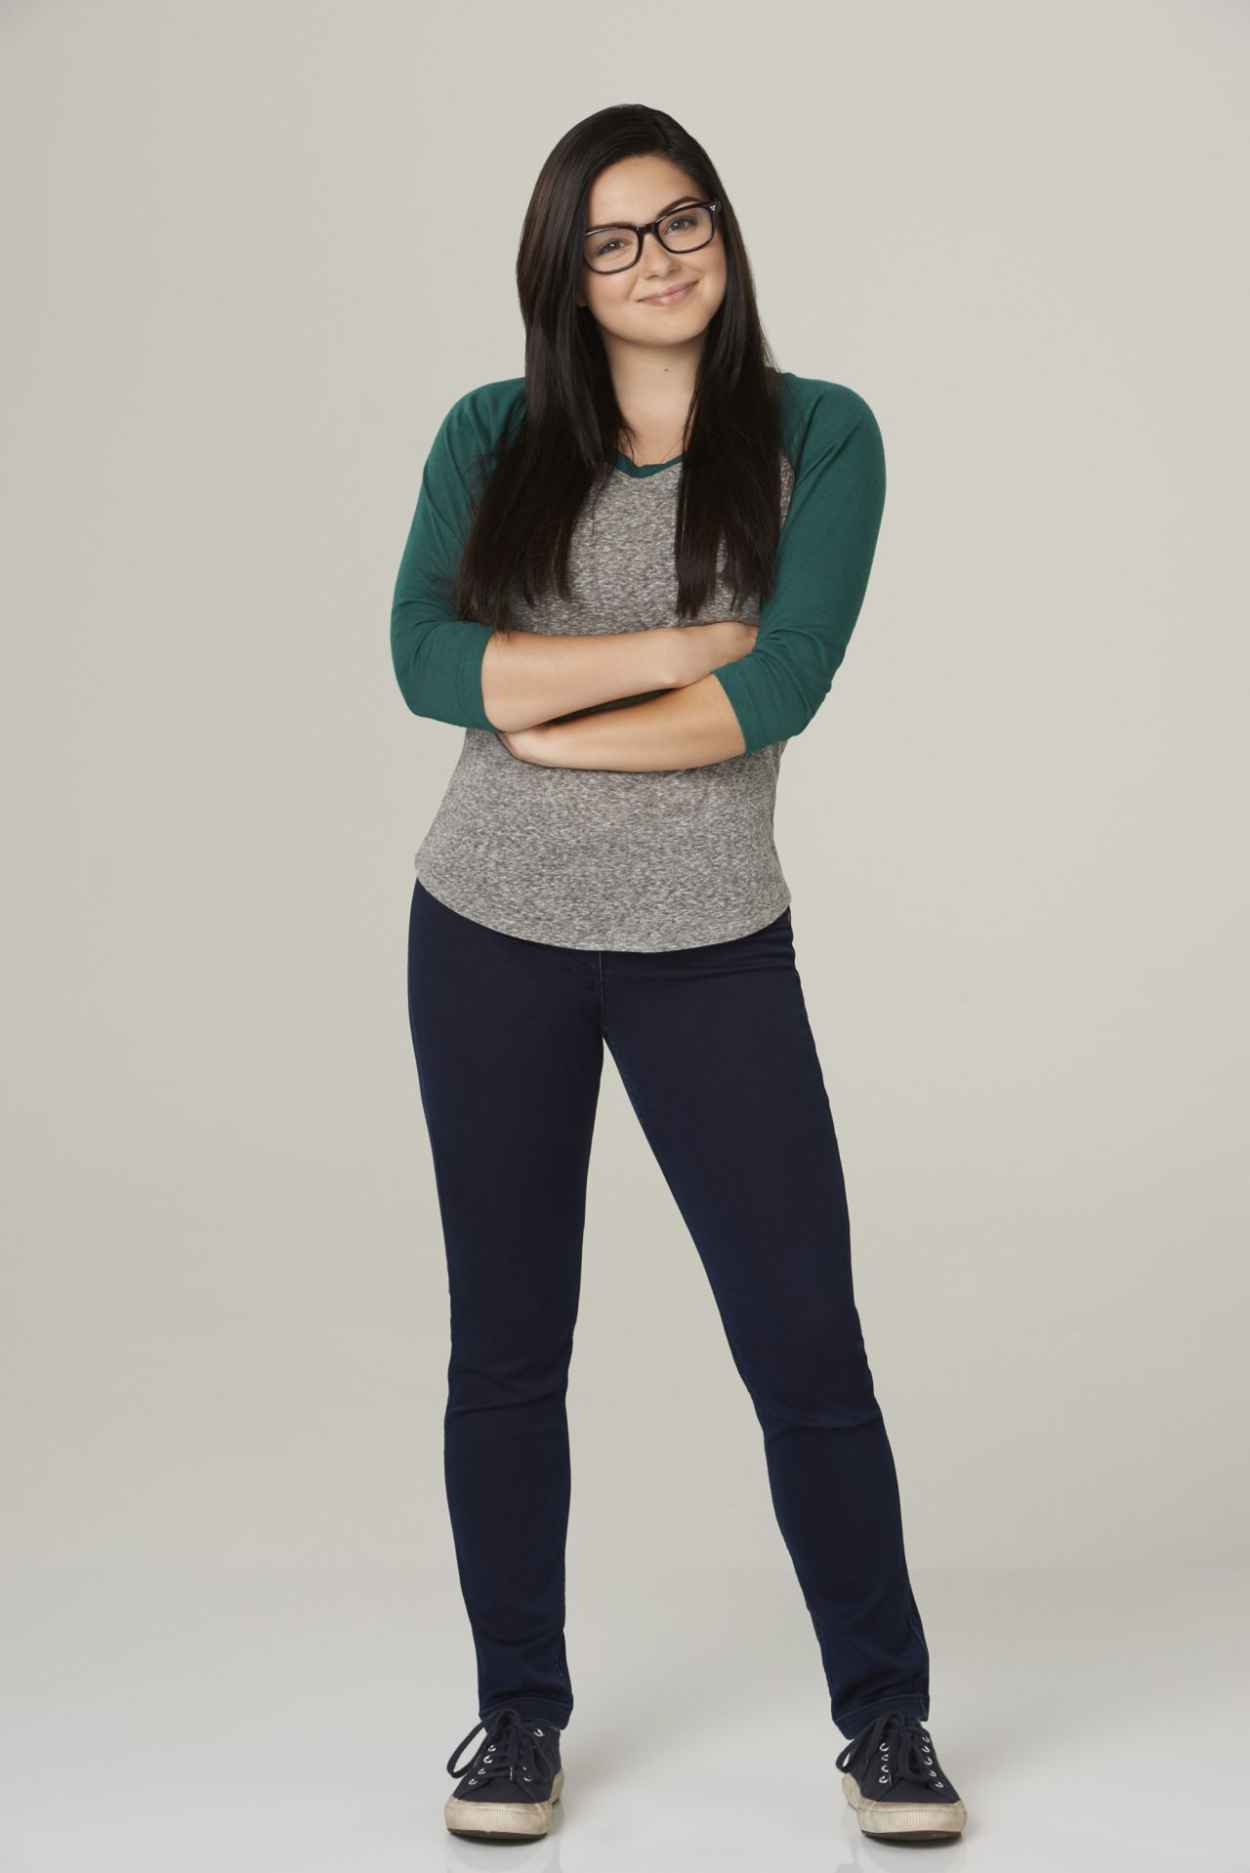 Ariel Winter - Modern Family Season 6 Promo Shots-1